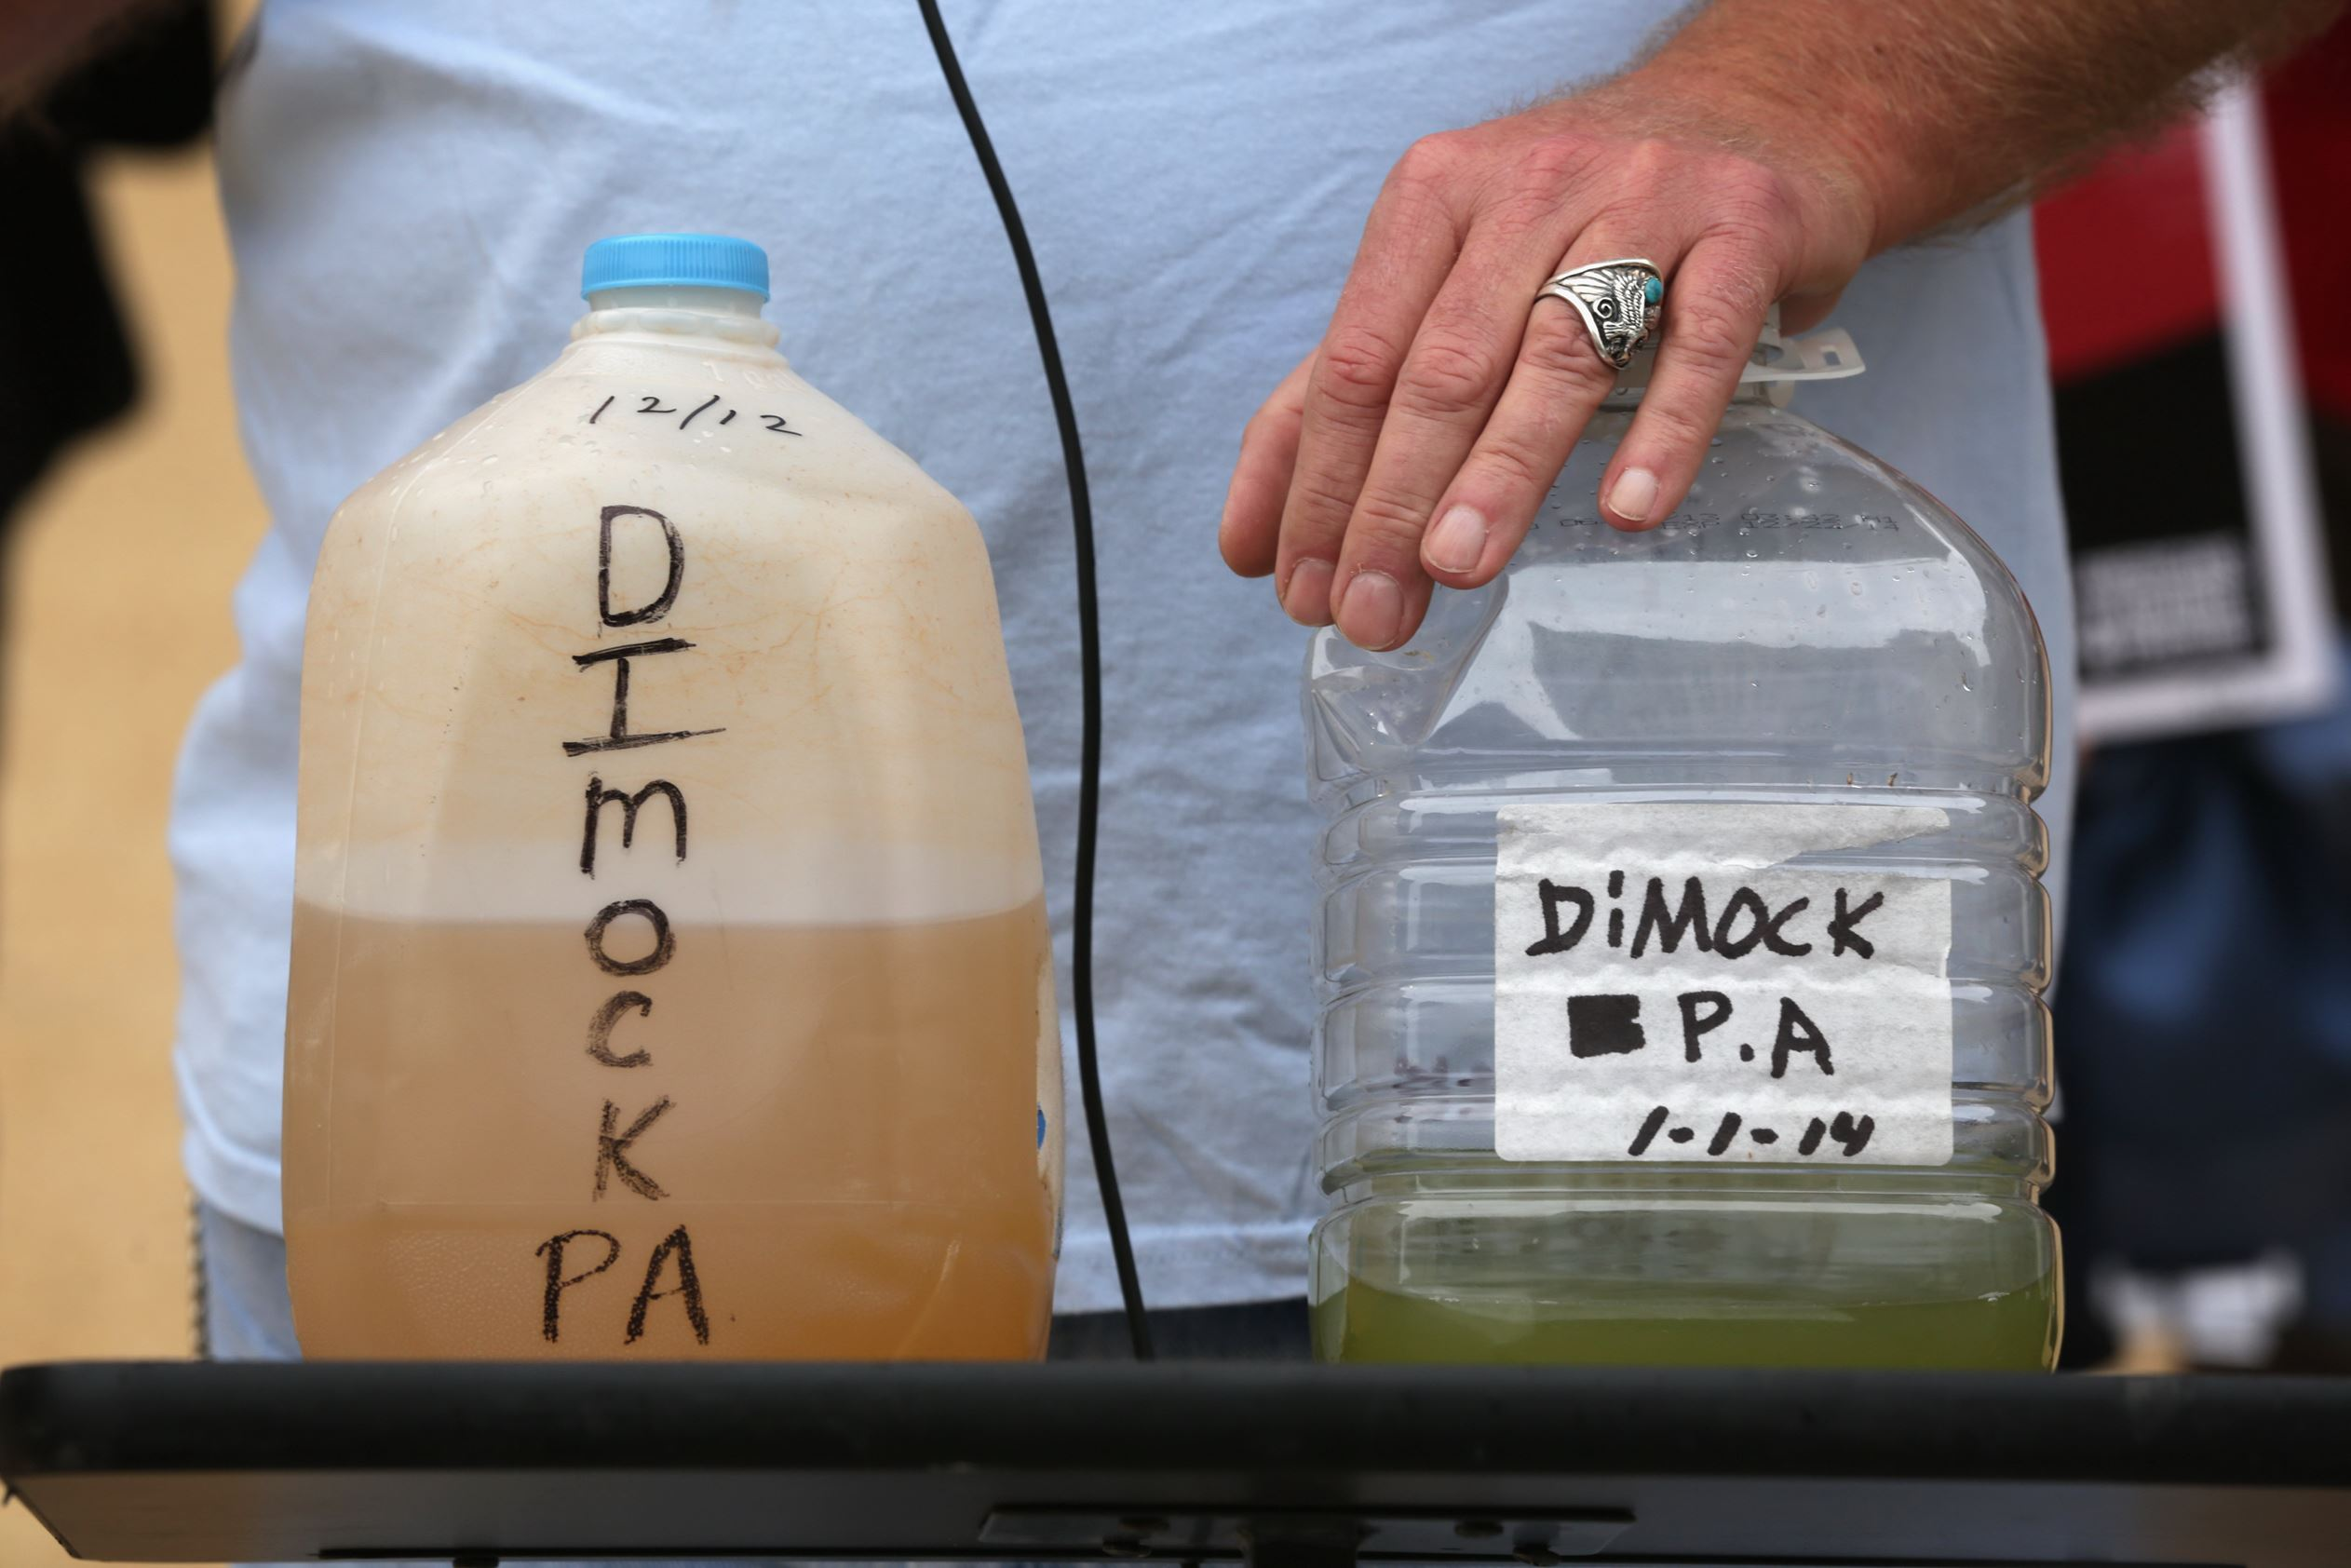 PAfracking2 Ray Kemble show water samples collected from Dimock during a 2014 rally on fracking-related water investigations outside EPA's Headquarters in Washington, D.C.